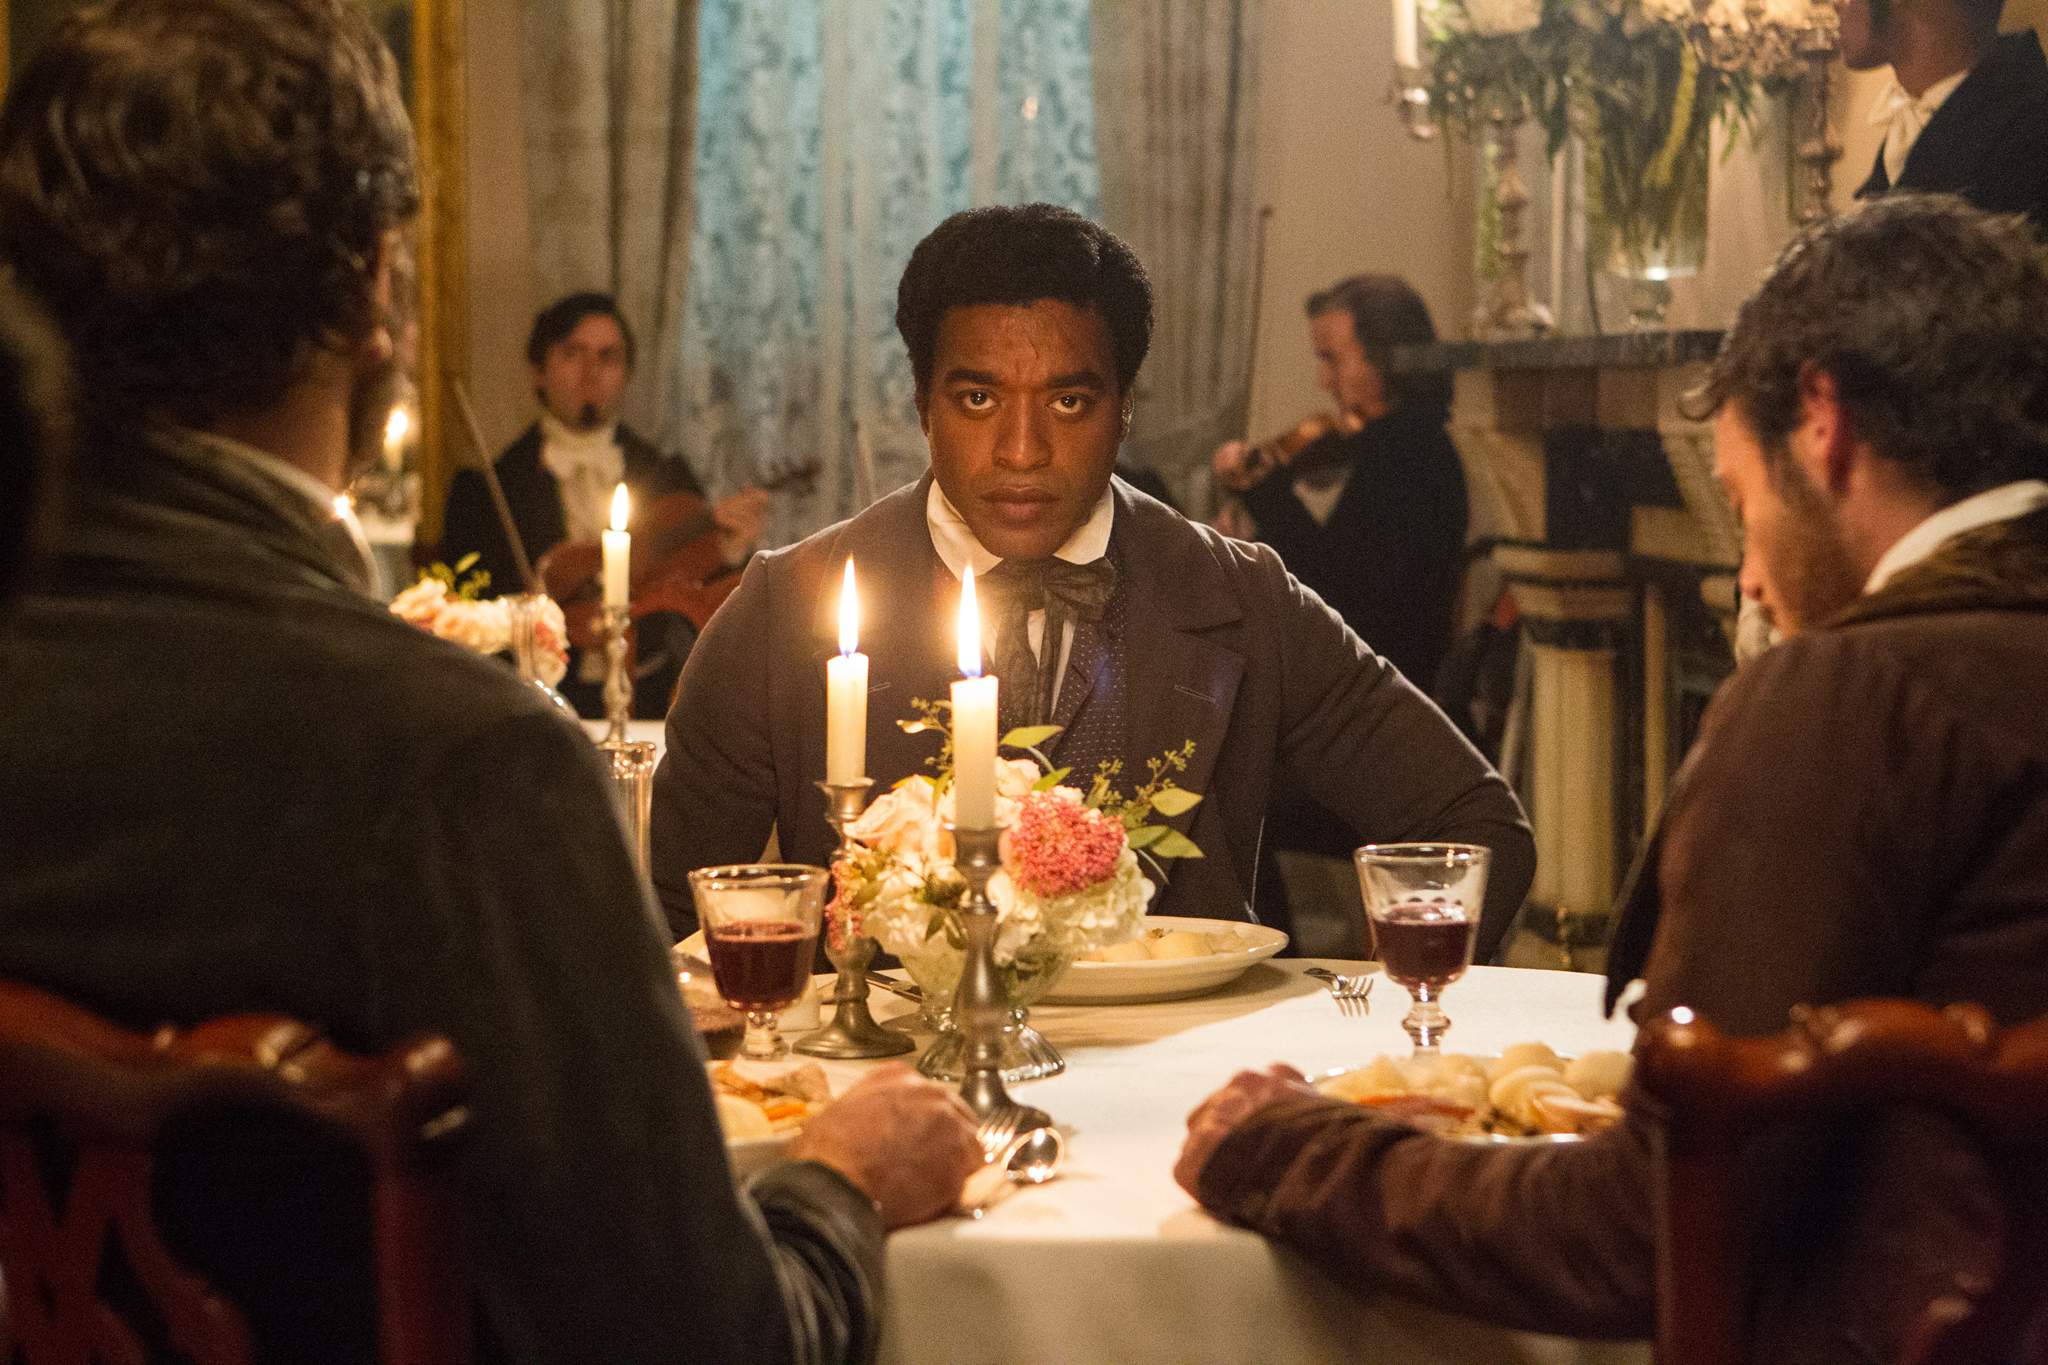 Man vs. oppressive society: <em>12 Years a Slave</em> (Oct 18)